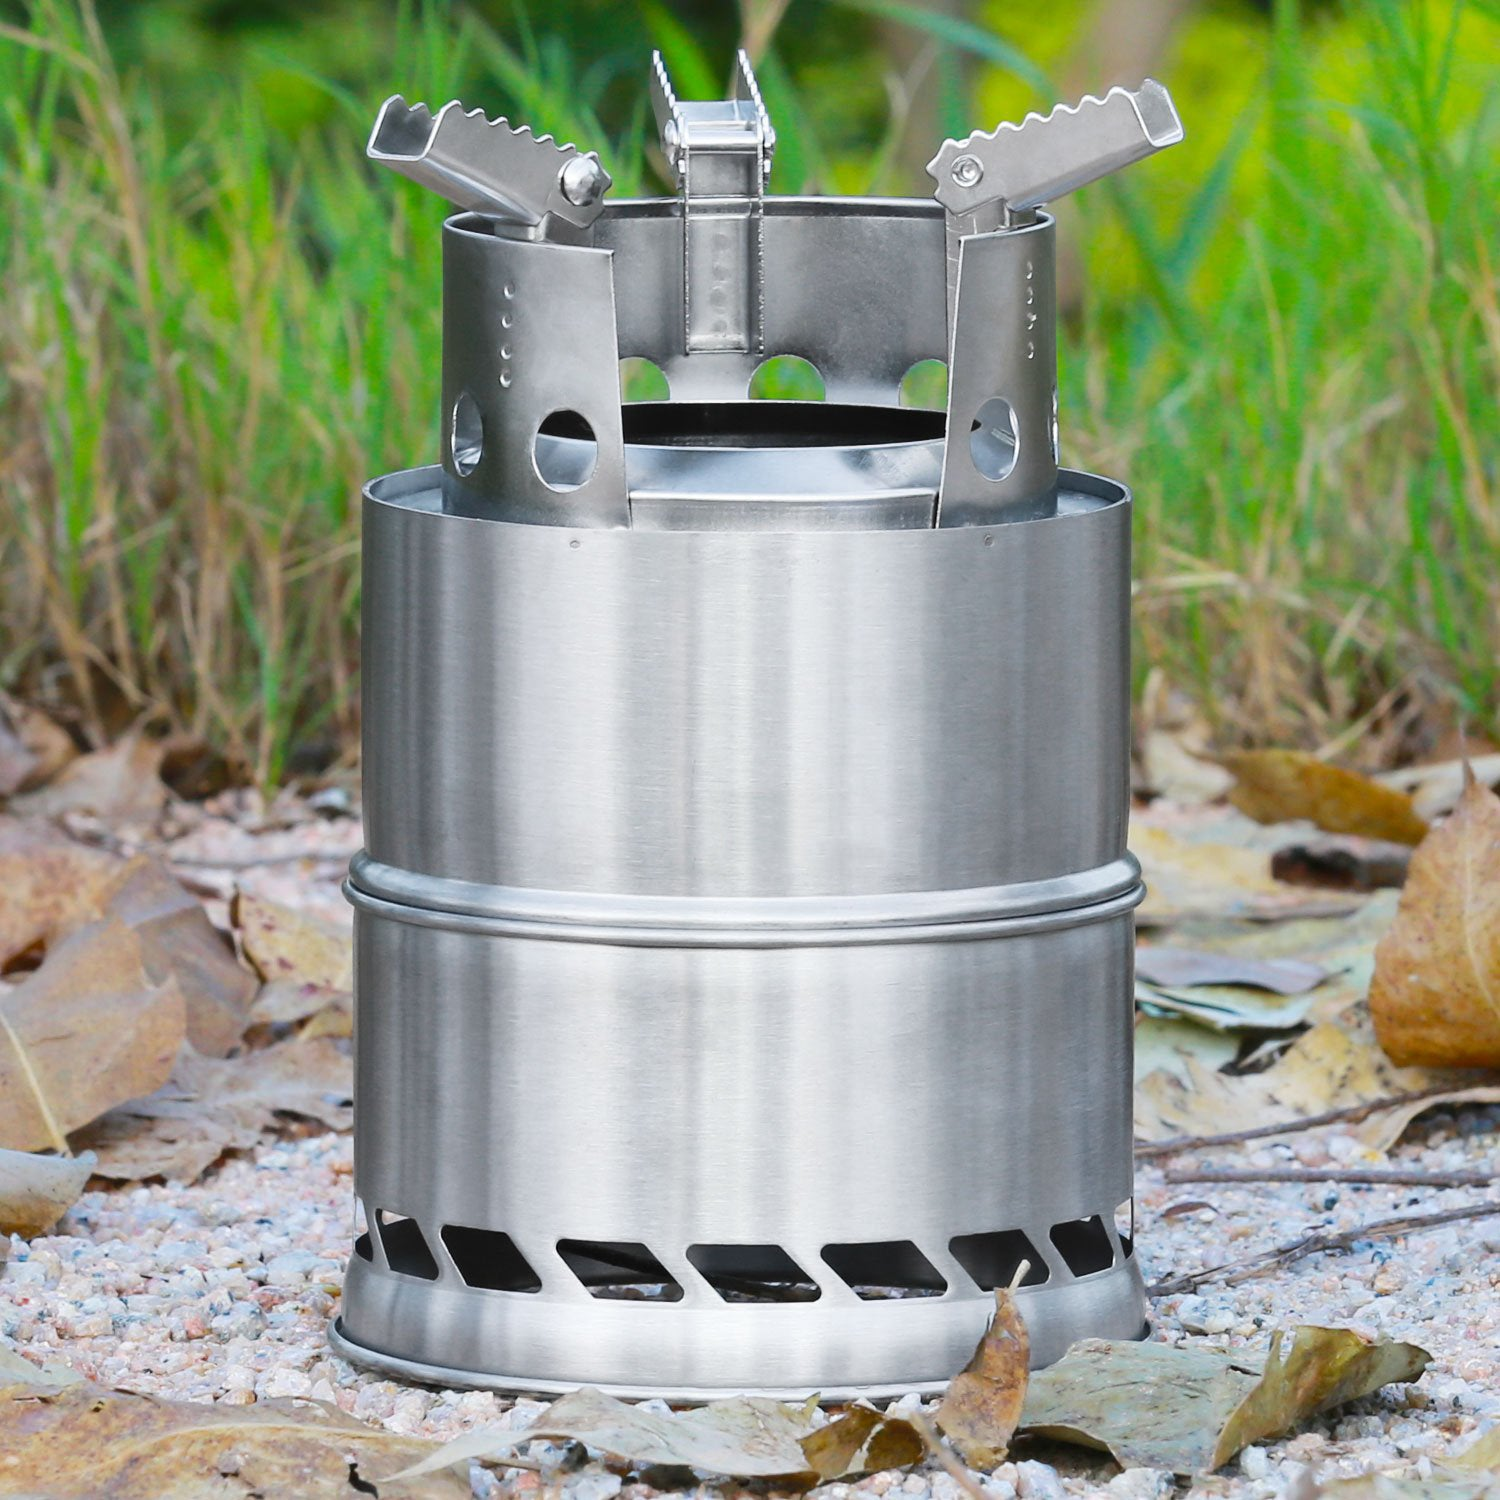 Portable Stainless Steel Wood Burning Stove